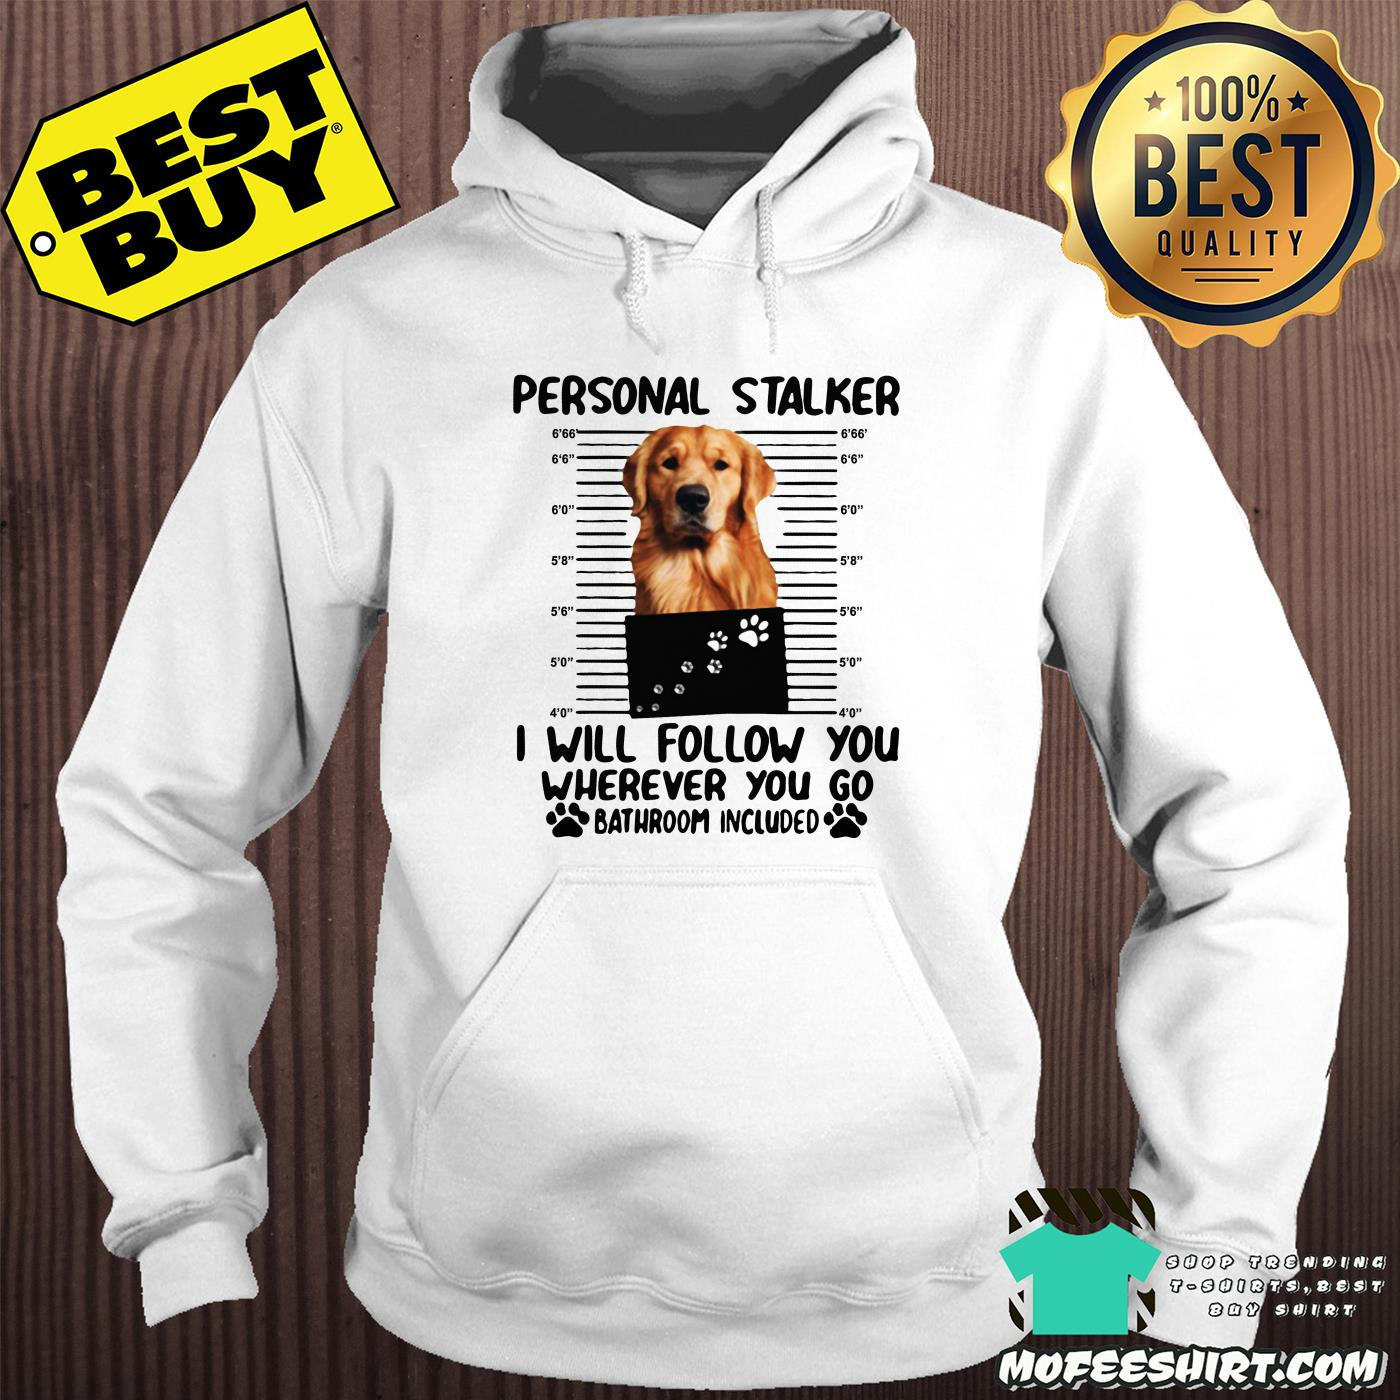 golden personal stalker i will follow you wherever you go bathroom included hoodie - Golden Personal Stalker I Will Follow You Wherever You Go Bathroom Included shirt